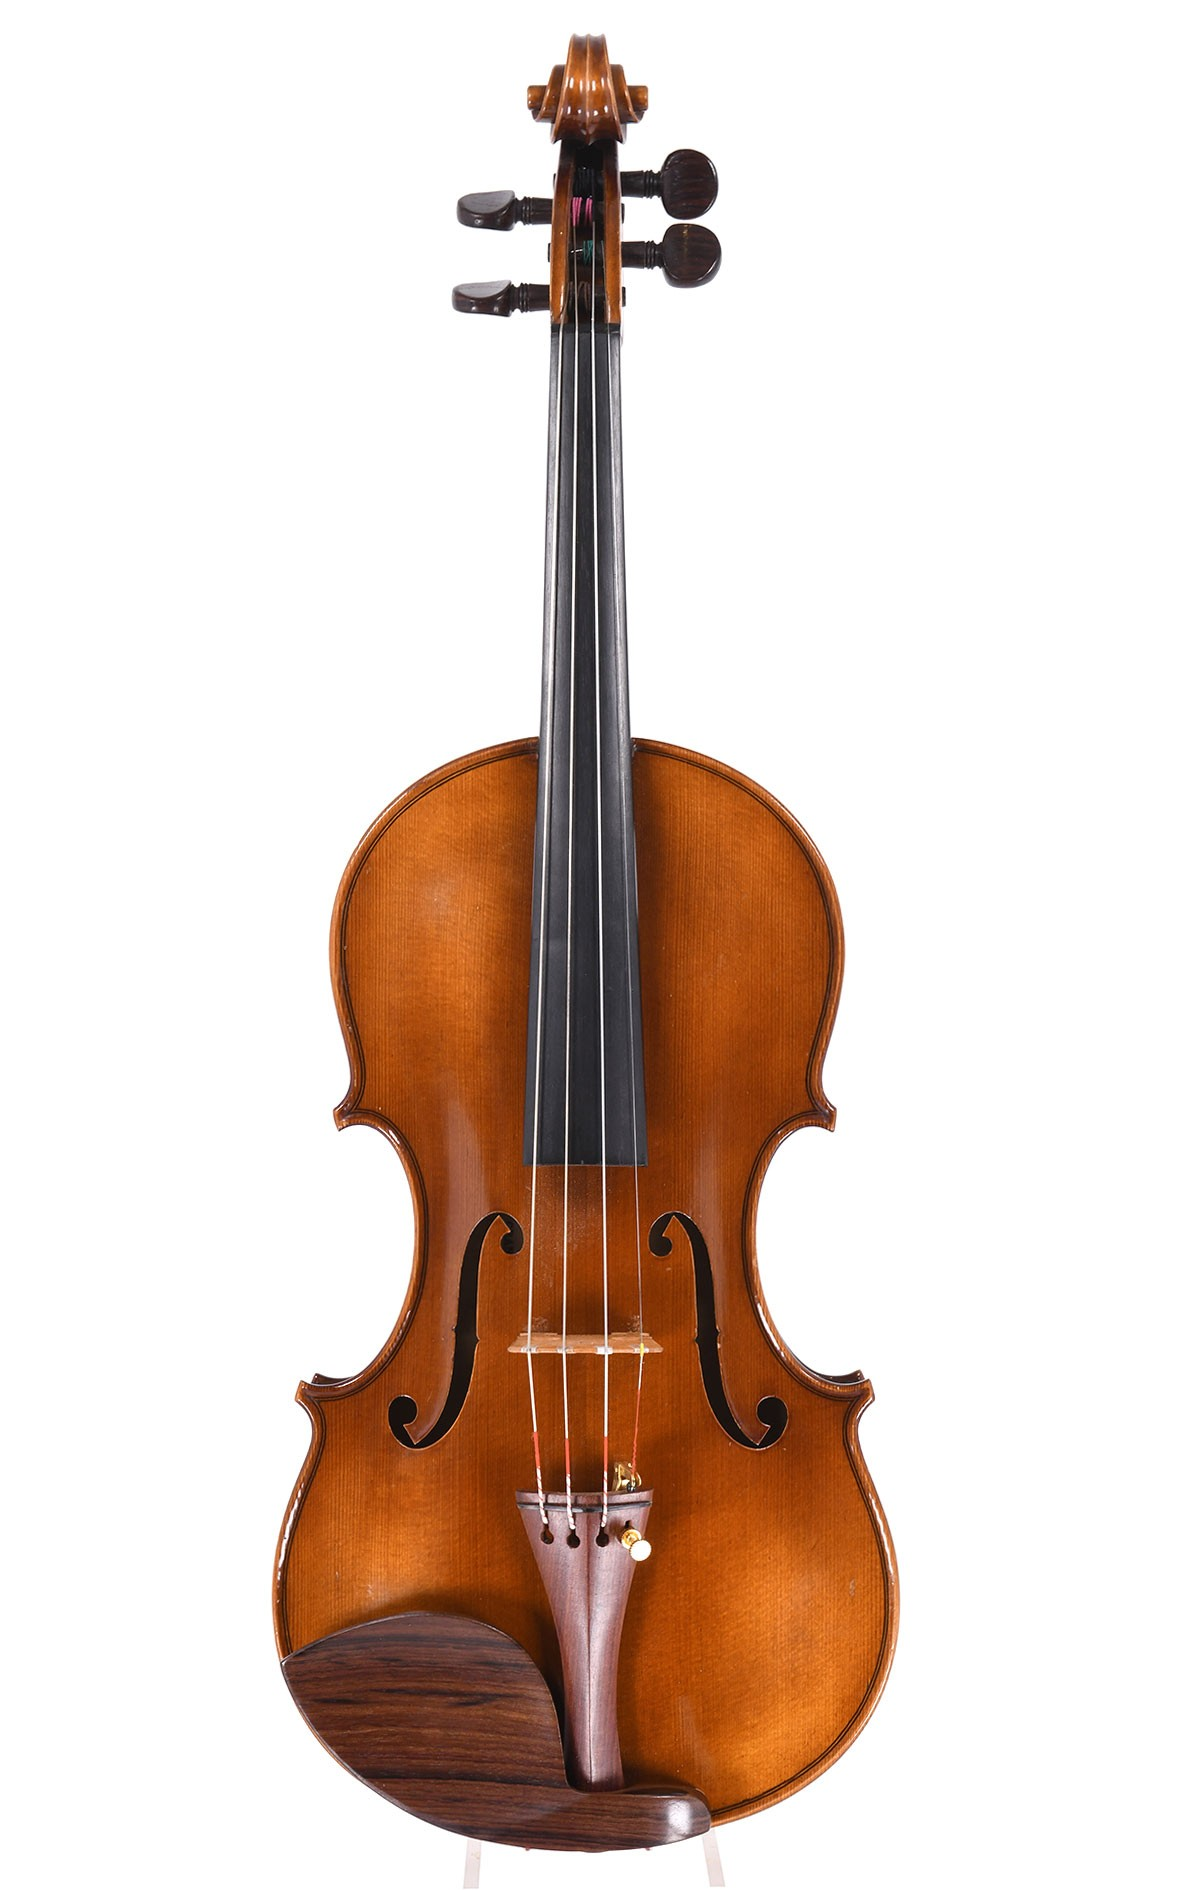 Fine French violin by Collin-Mézin